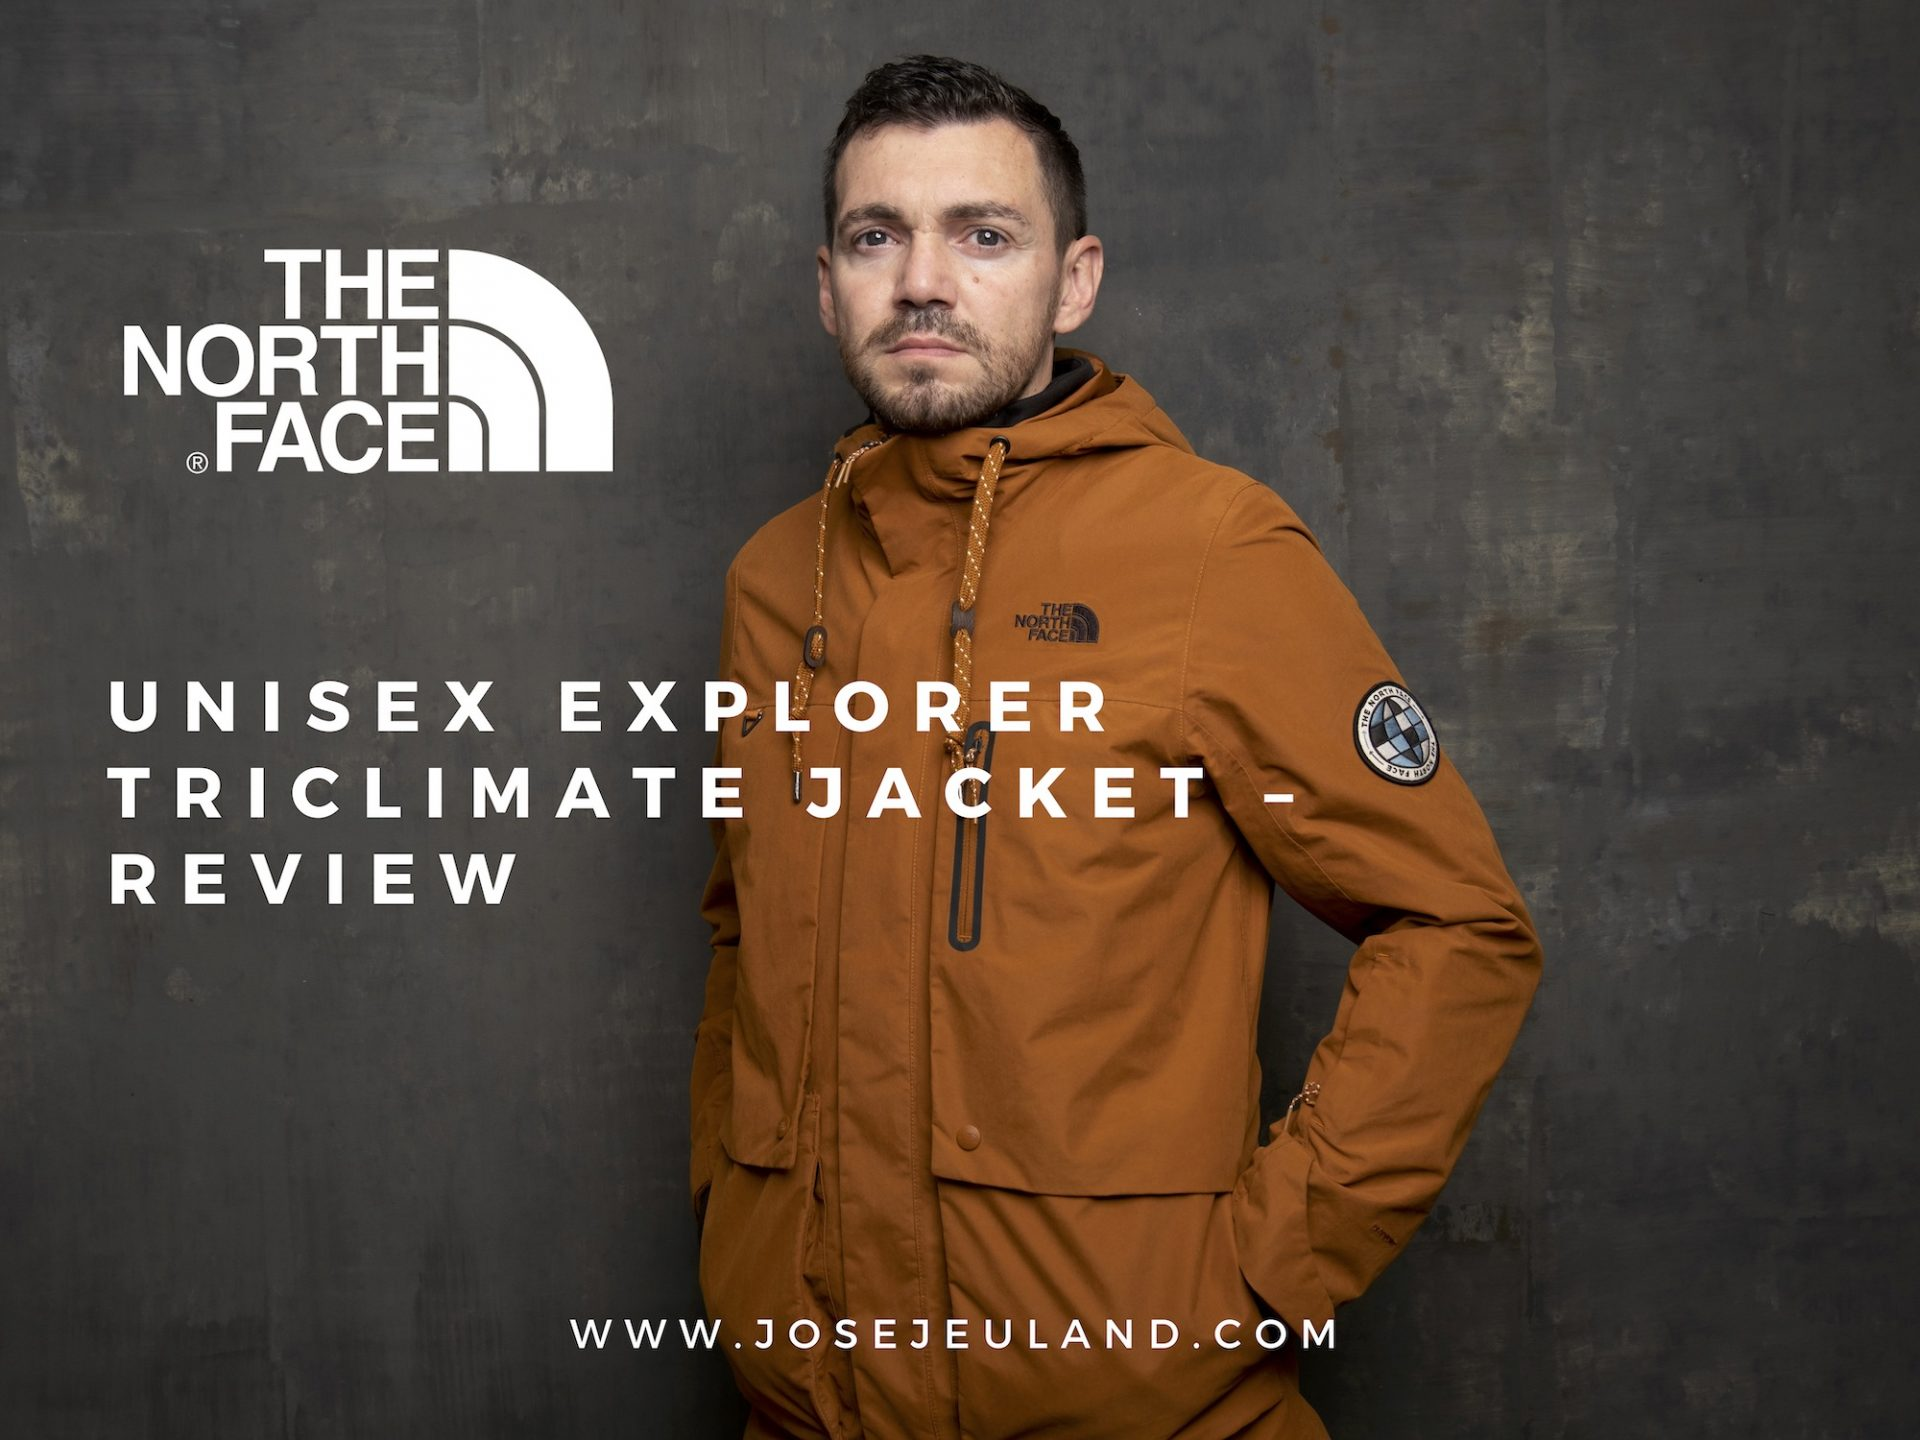 Explorer by North Face